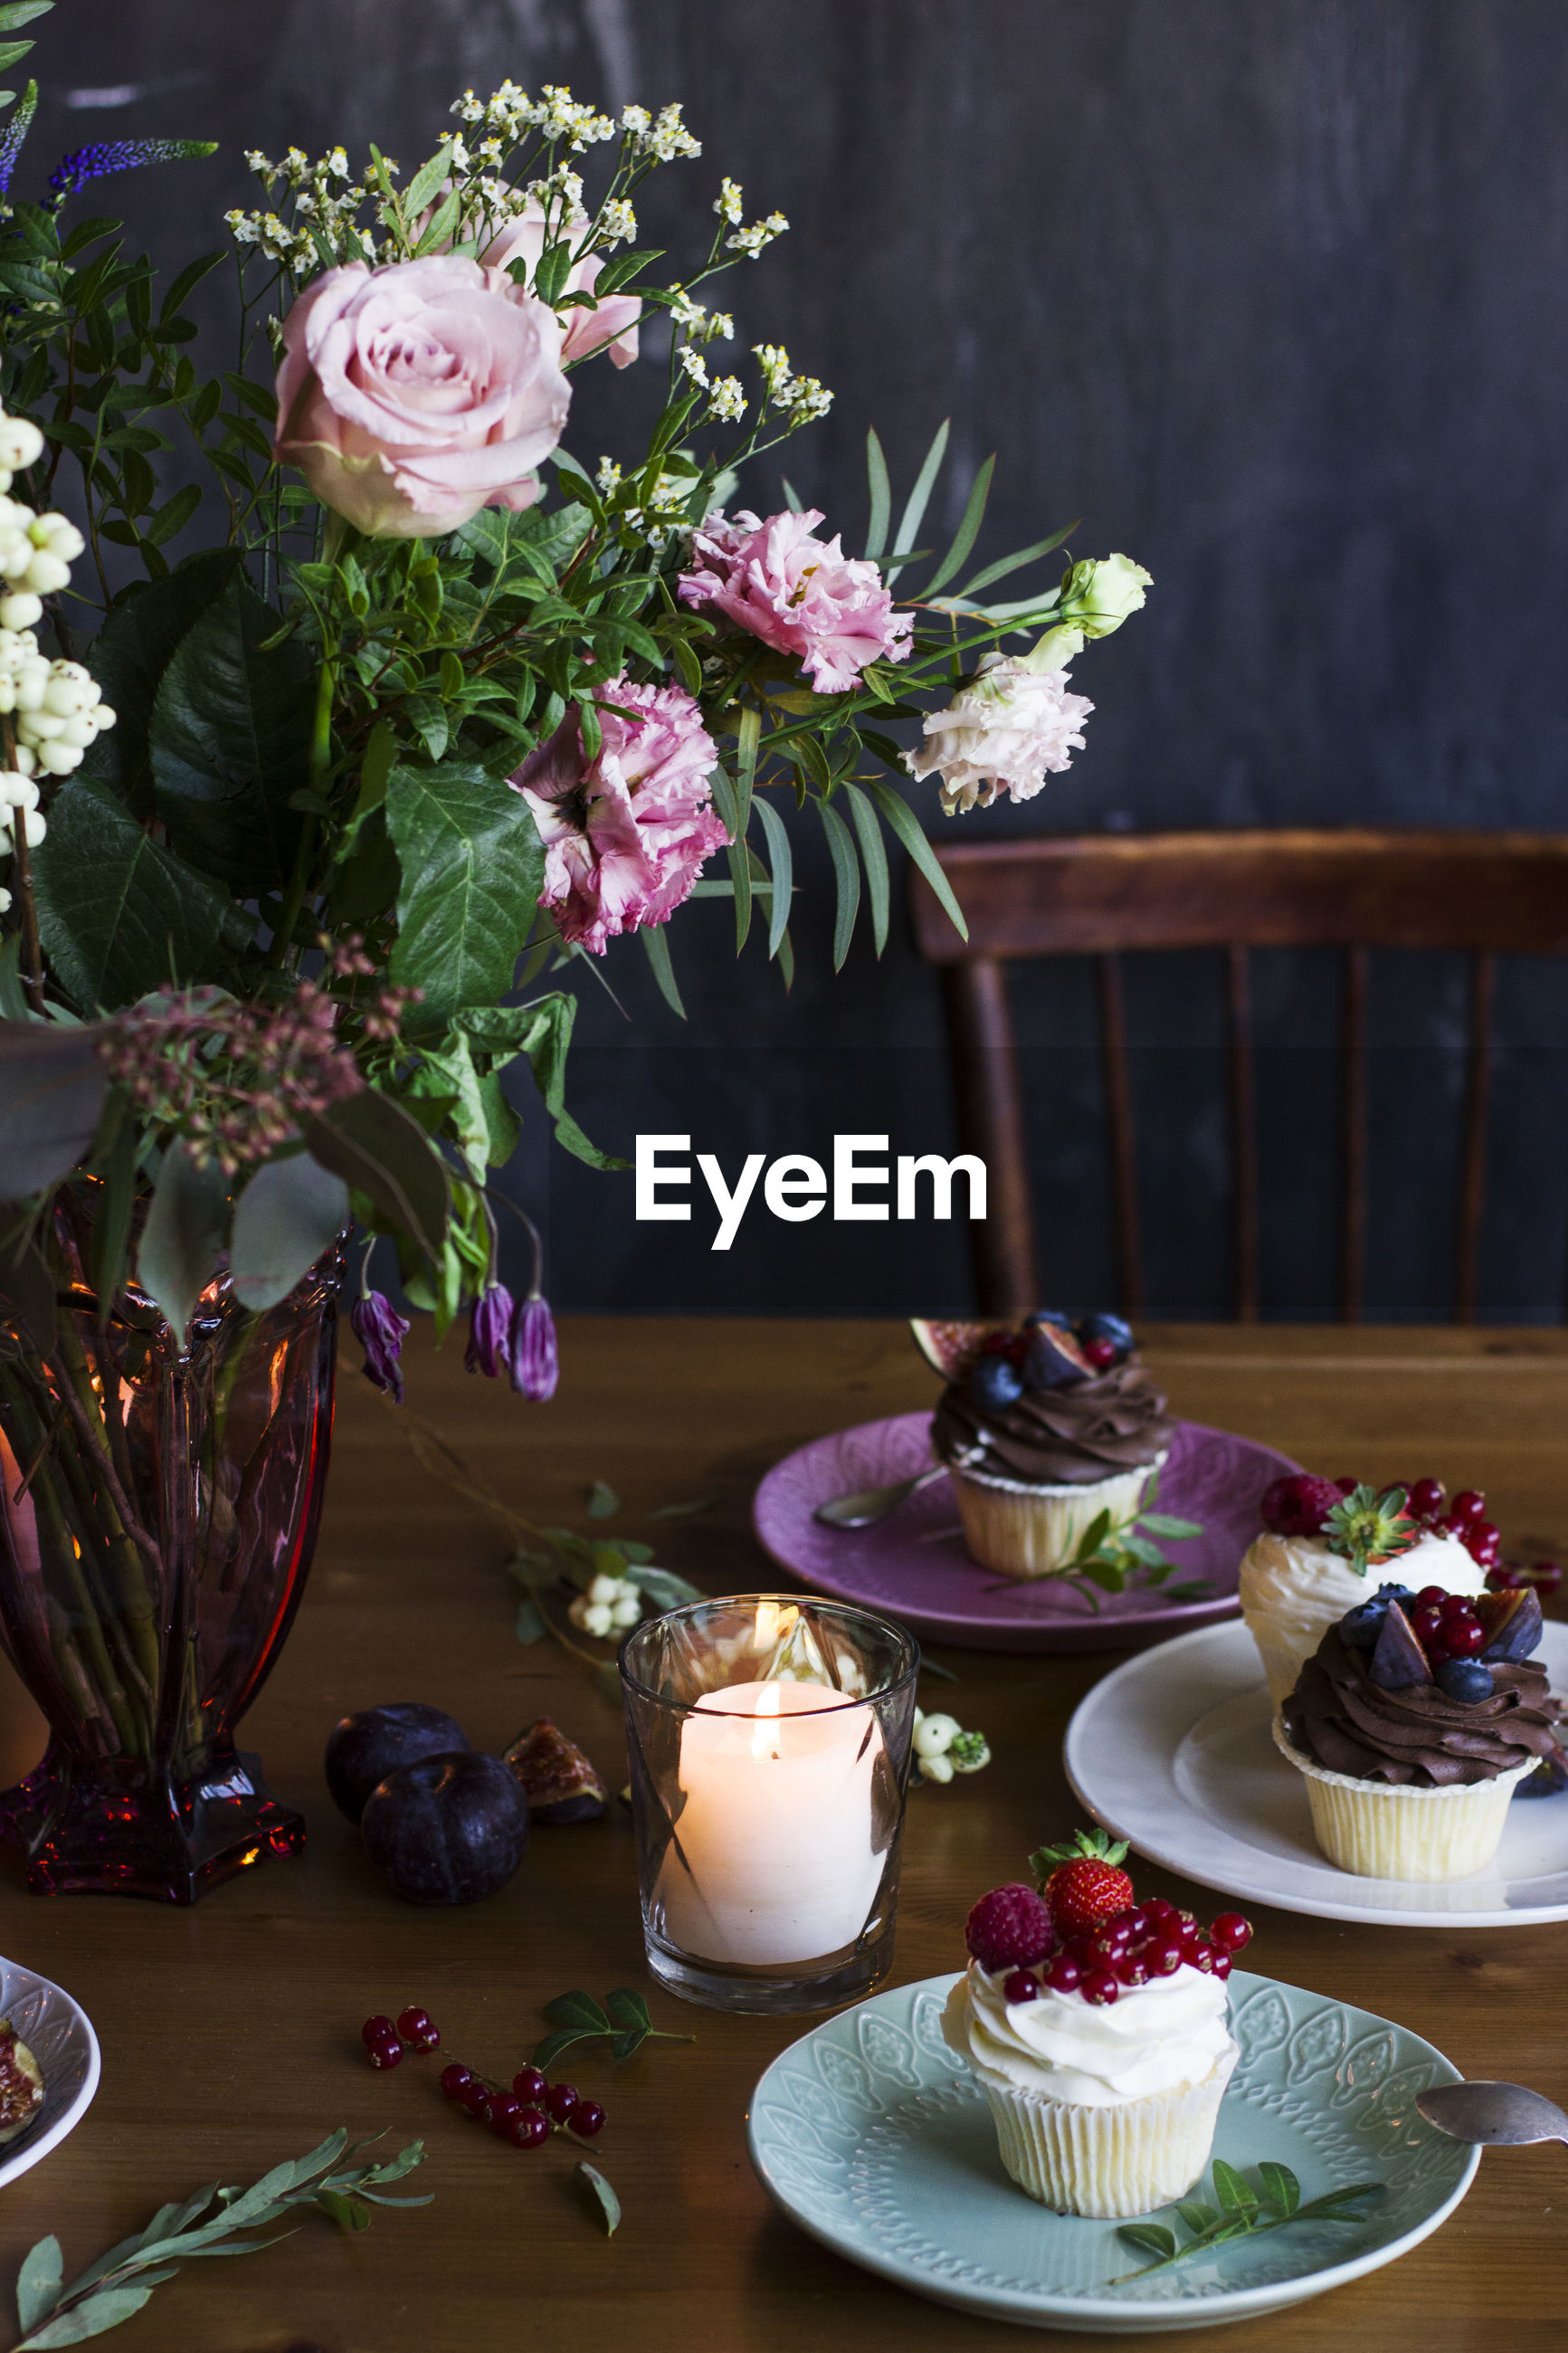 CLOSE-UP OF CAKE SERVED ON TABLE BY POTTED PLANT